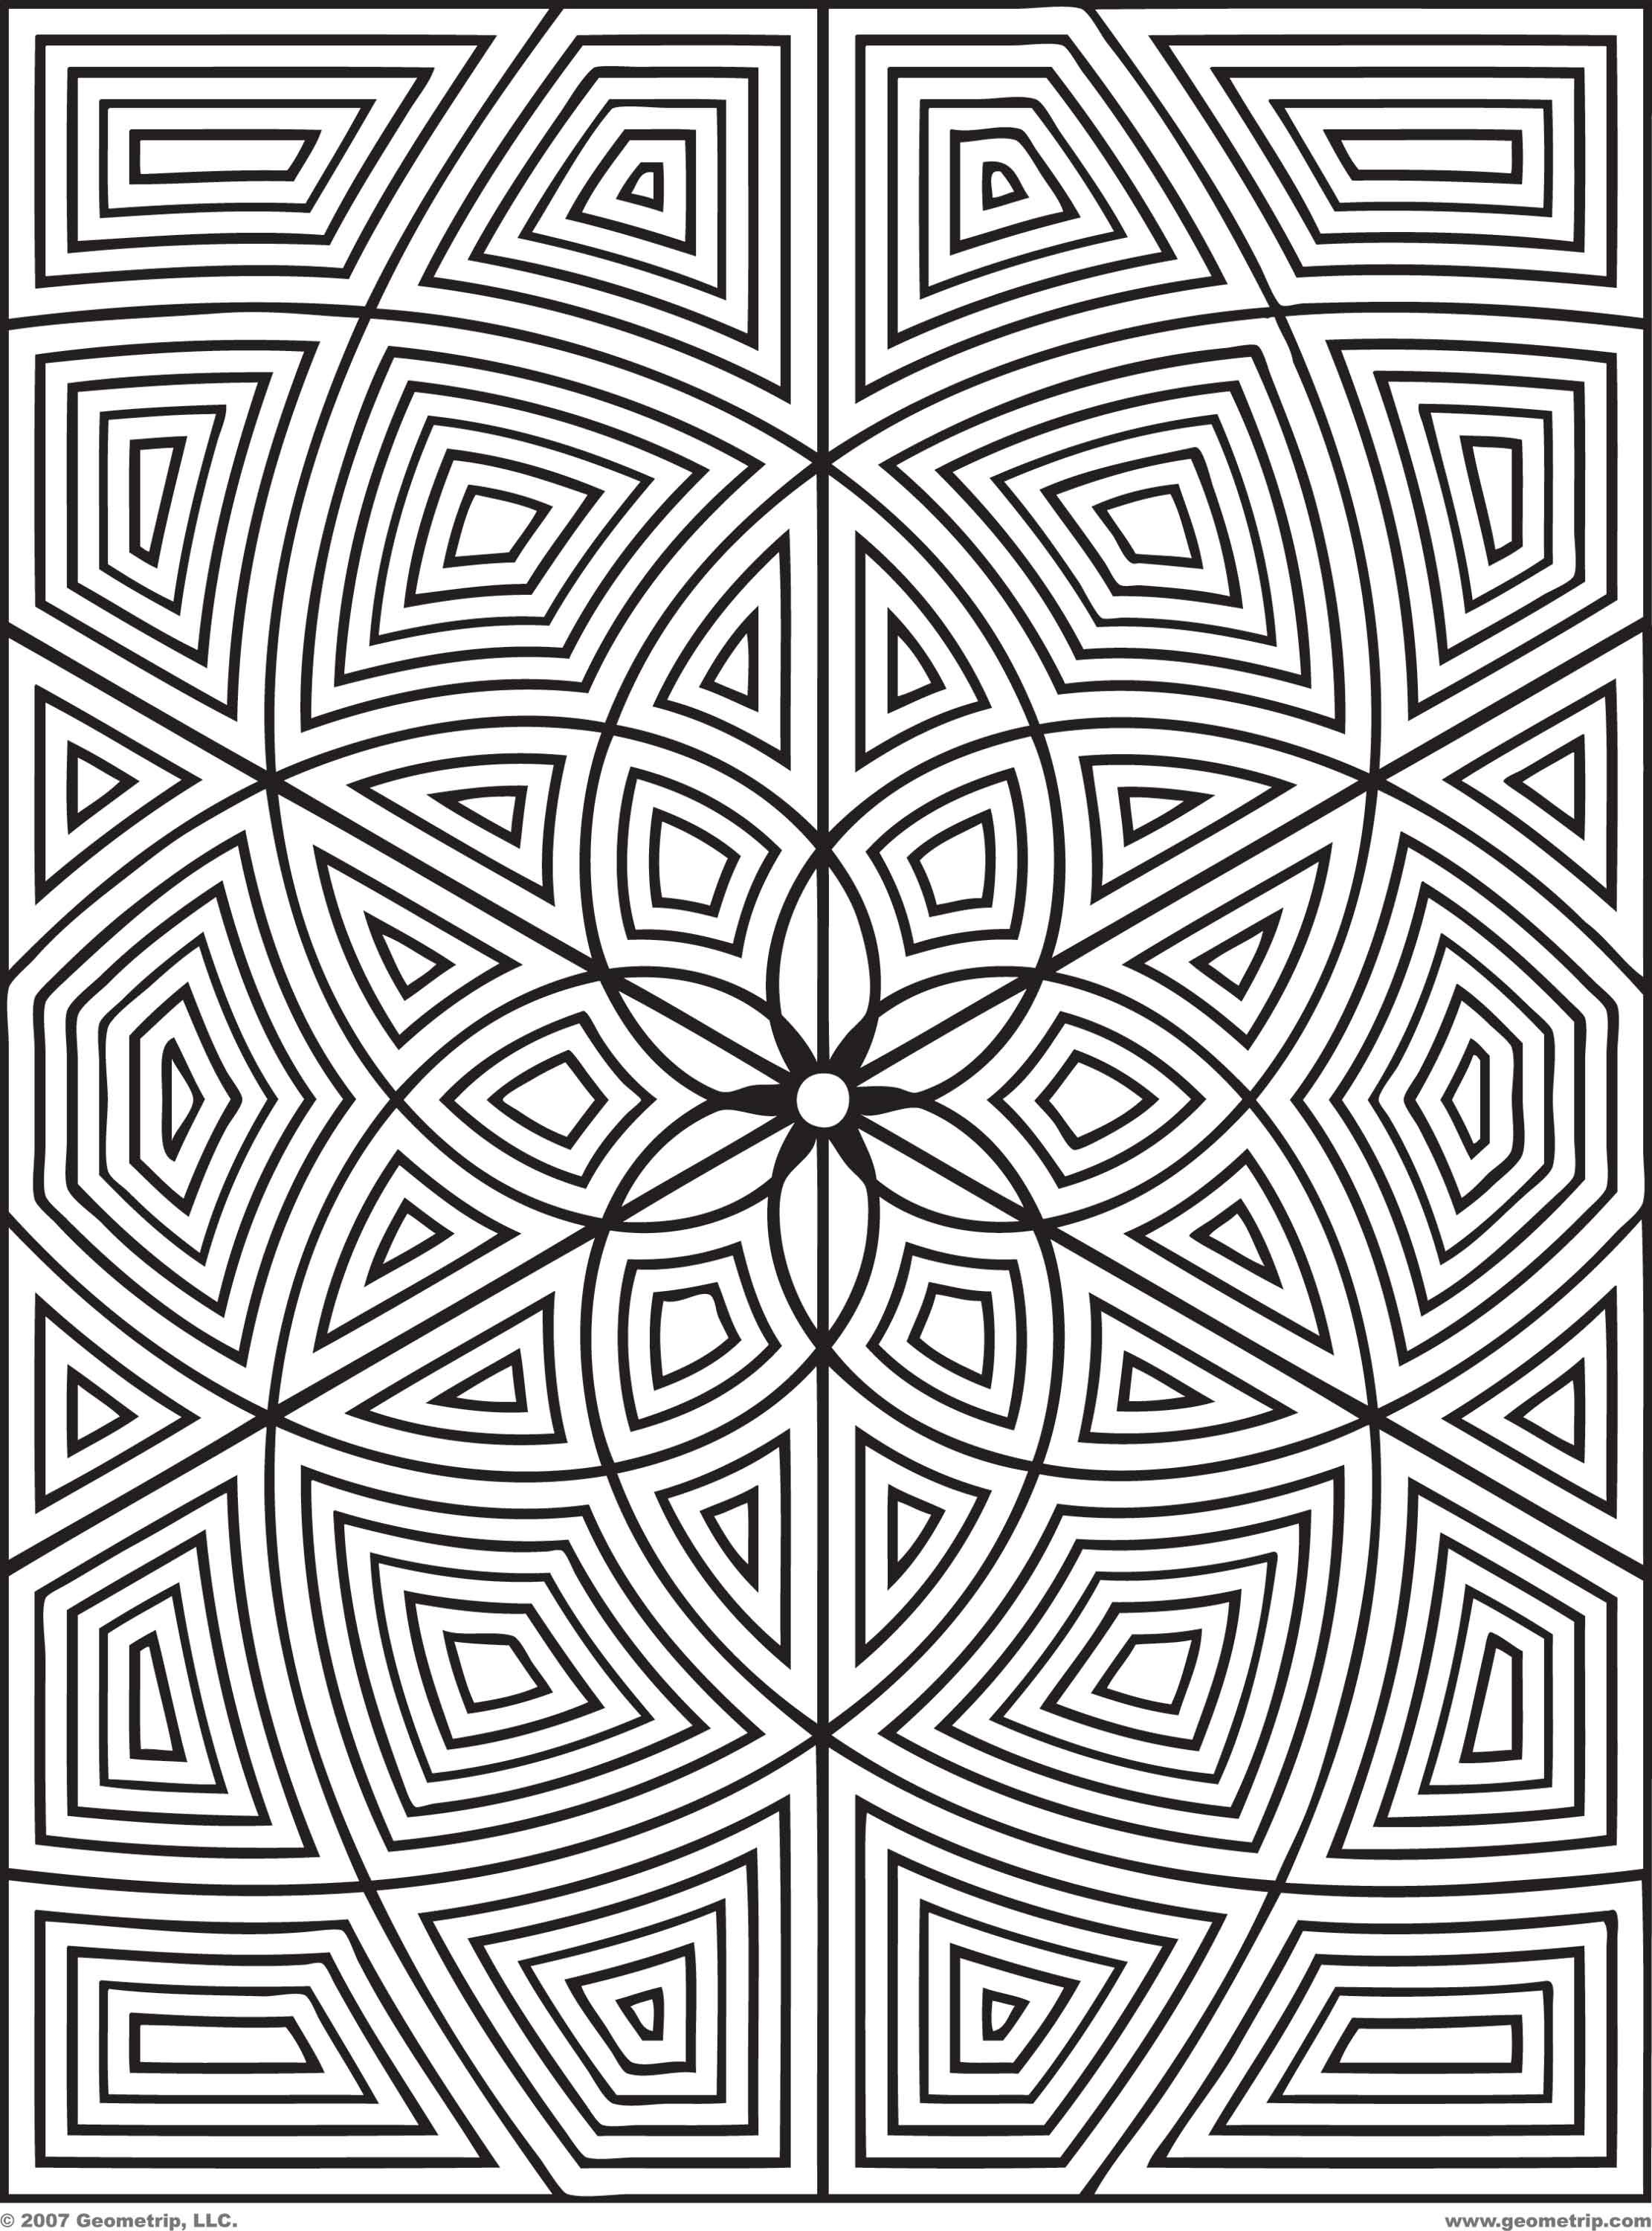 Free Geometric Design Coloring Pages Images Crazy Gallery Geometric Coloring Pages Pattern Coloring Pages Mandala Coloring Pages